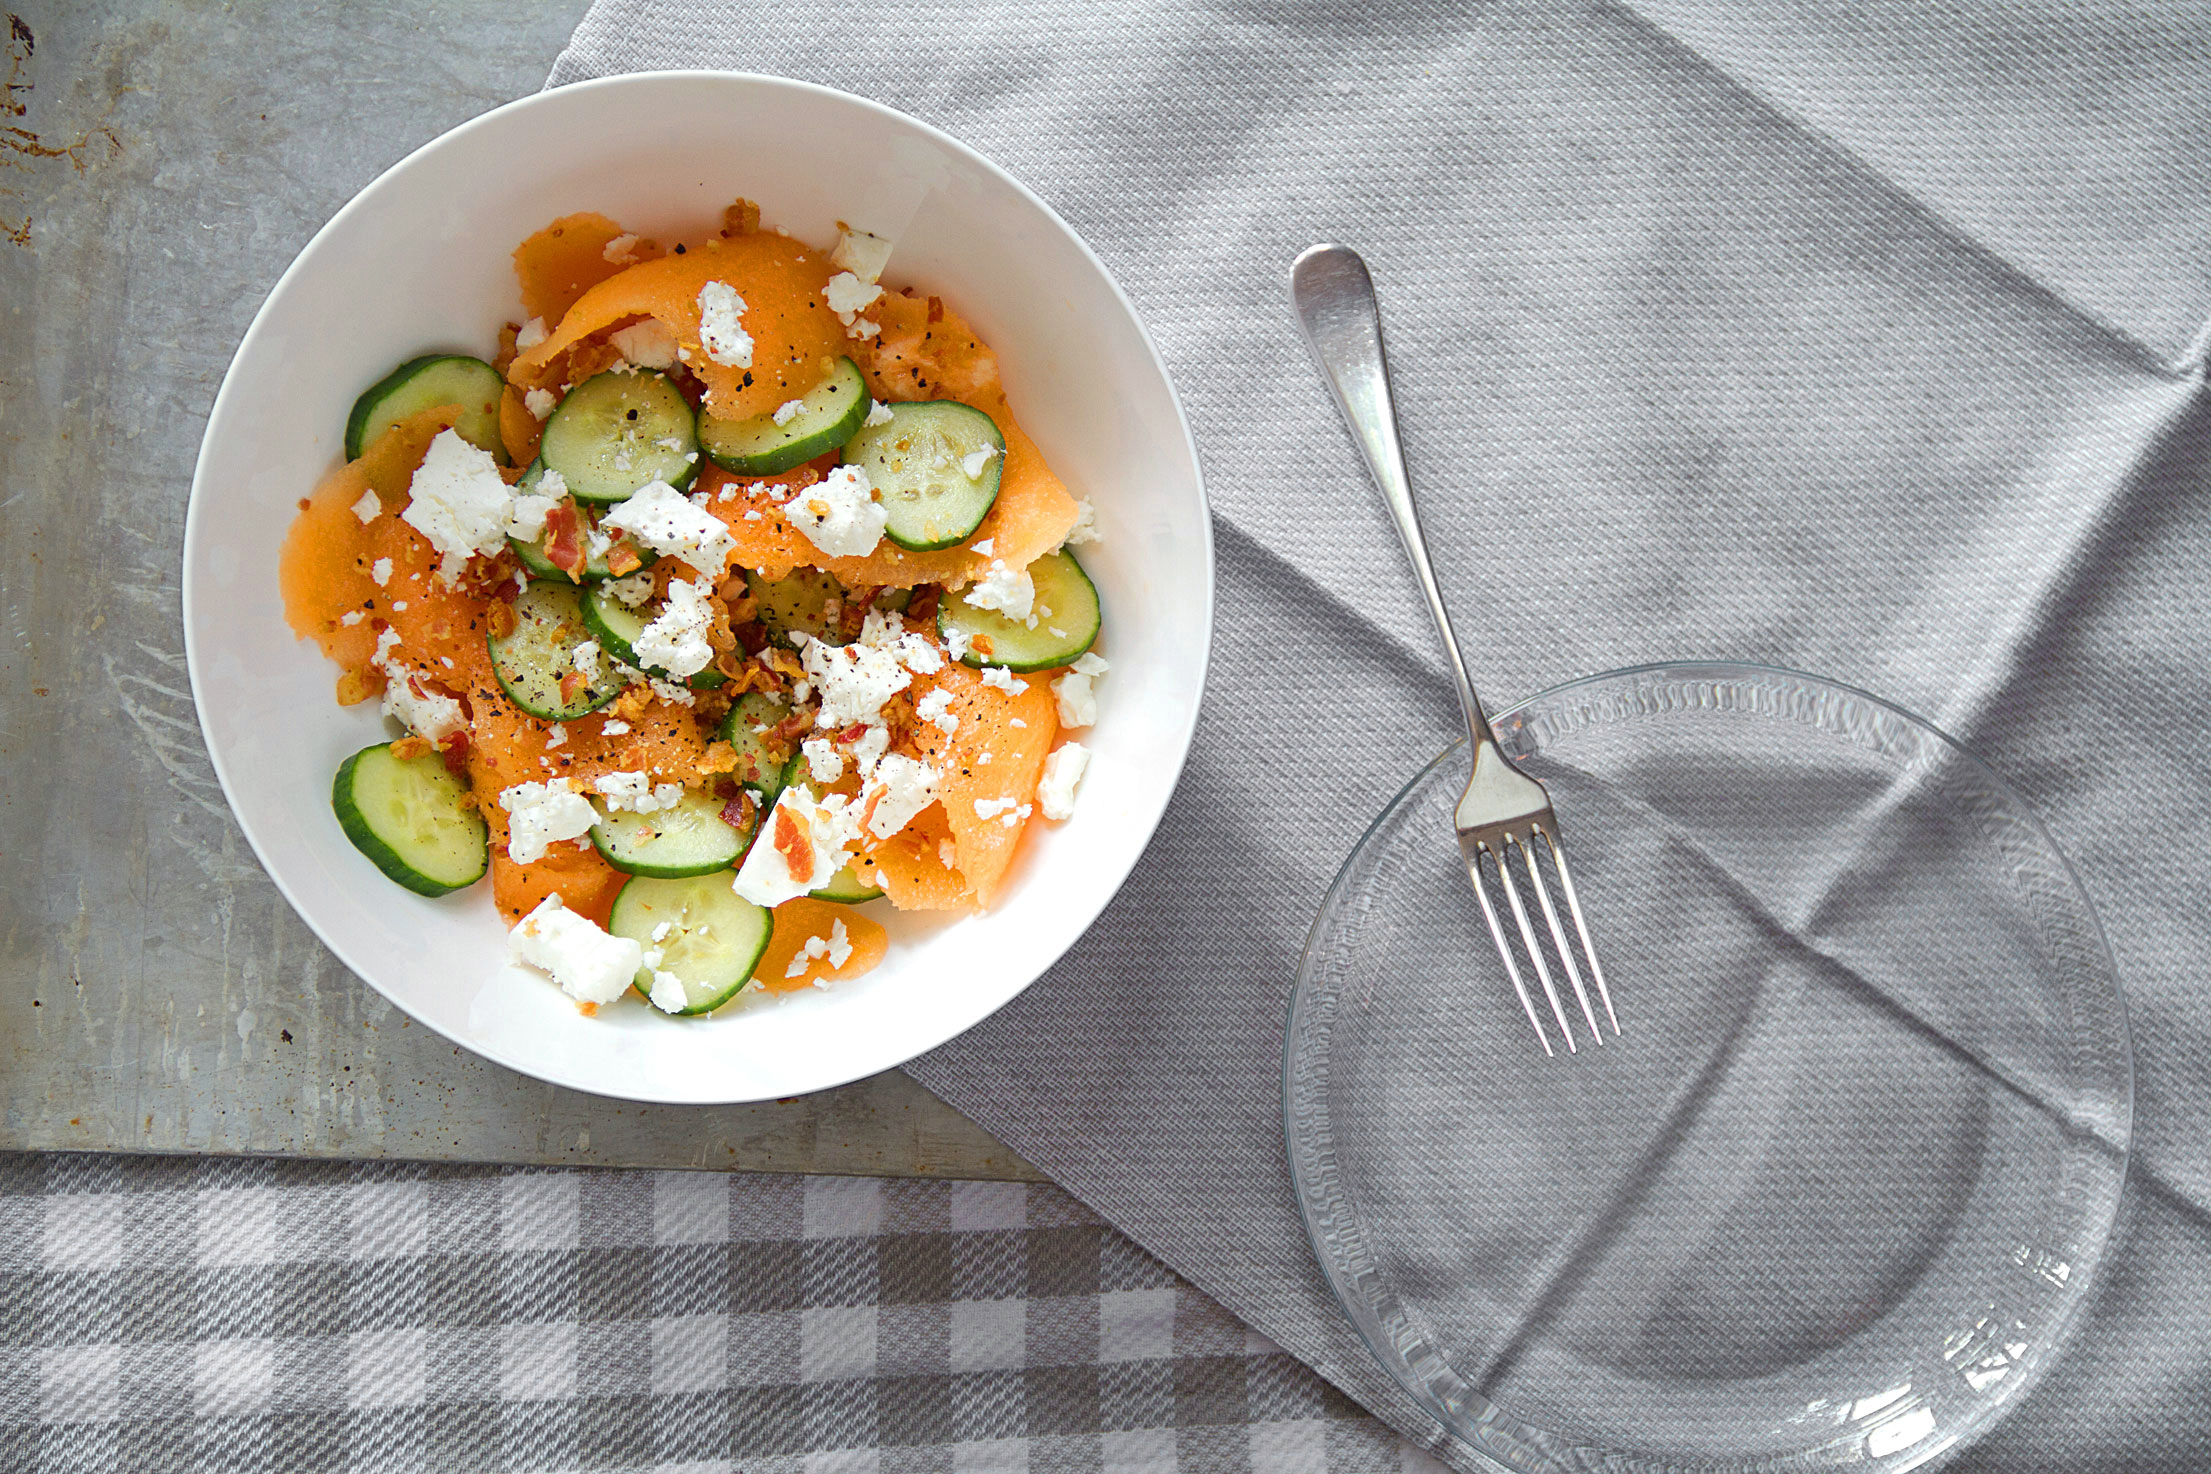 Cantaloupe Salad with Cucumber, Pancetta, and Feta